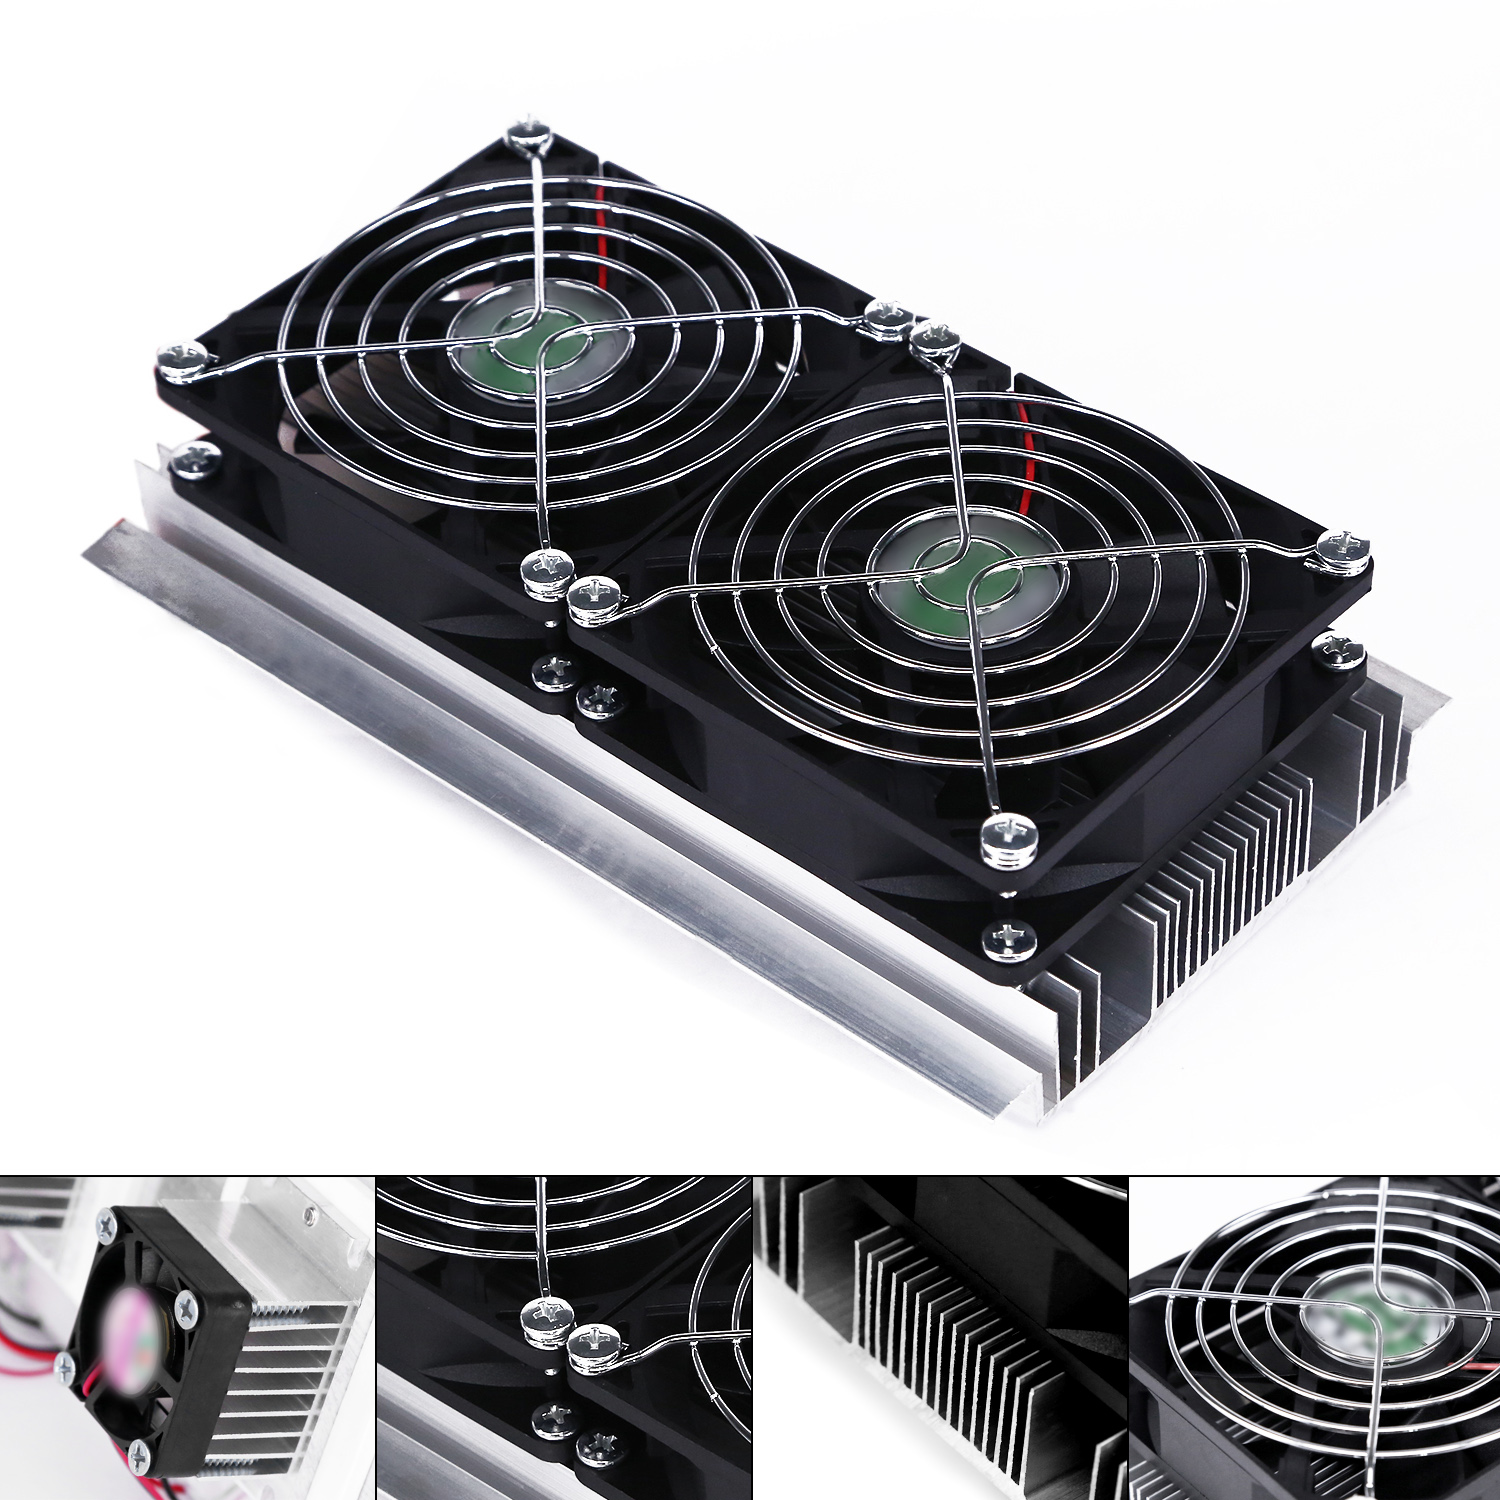 1PC Thermoelectric Peltier DIY Refrigeration Tools System 12V Semiconductor Cooler Air Cooling Dehumidification System c1204 4p1540 15 20 30 40mm 12v 4a 48w 4 layer semiconductor cooler 4 layer semiconductor subzero freezing thermoelectric cooler